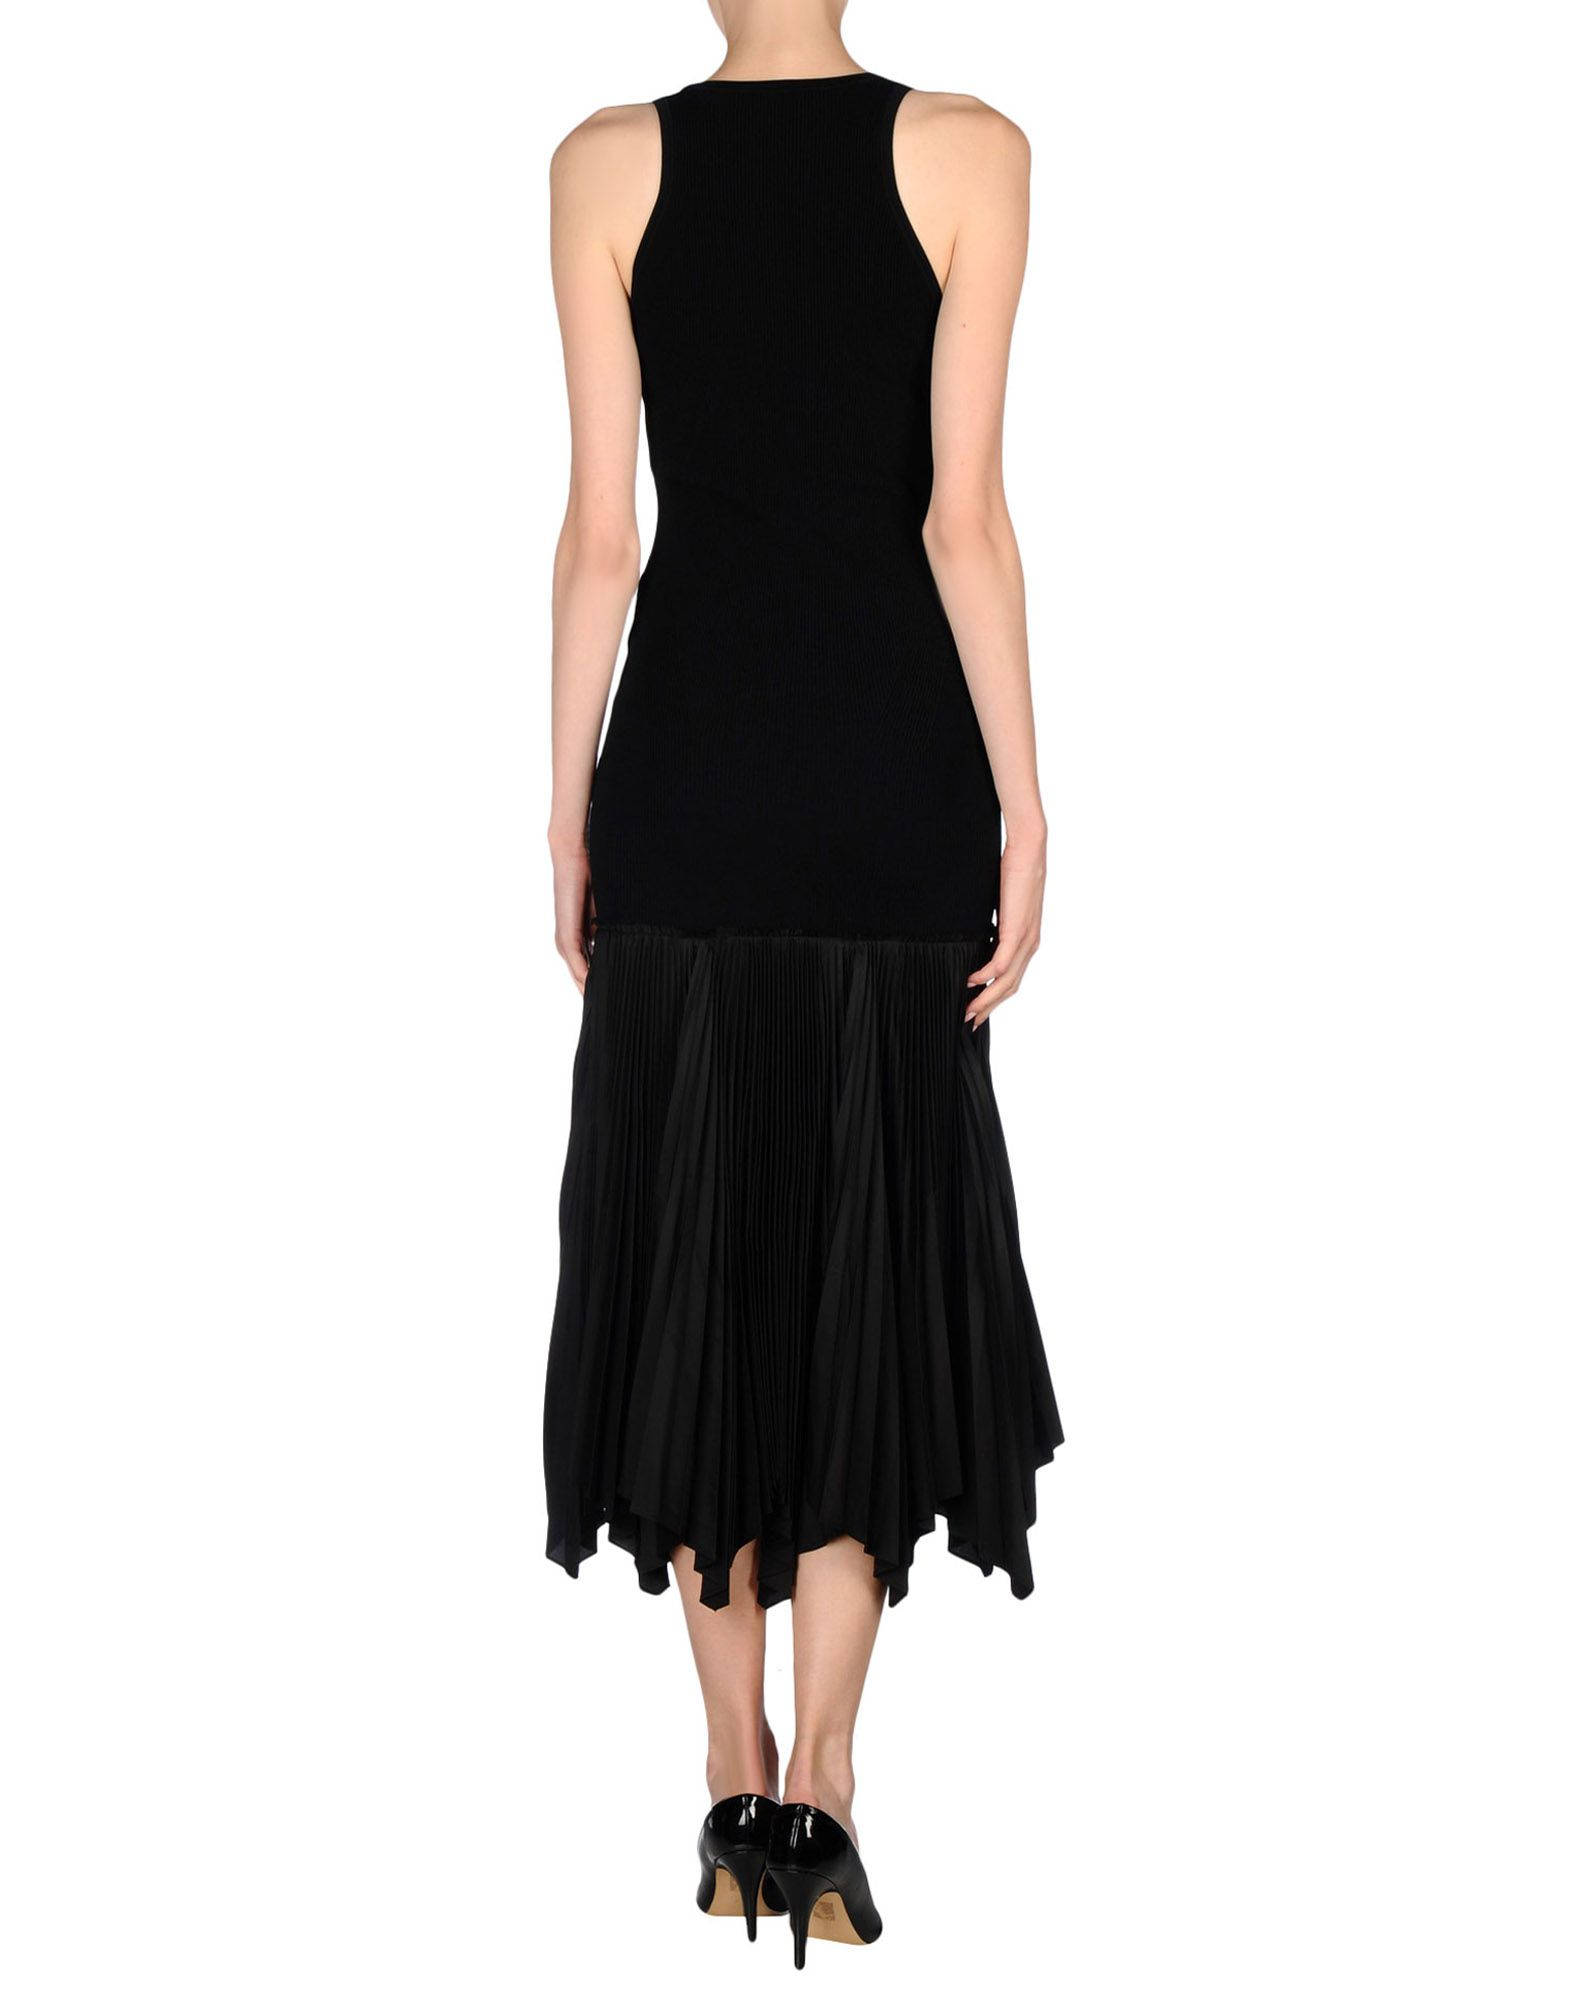 10 crosby derek lam 3 4 length dress in black lyst for Derek lam 10 crosby shirt dress